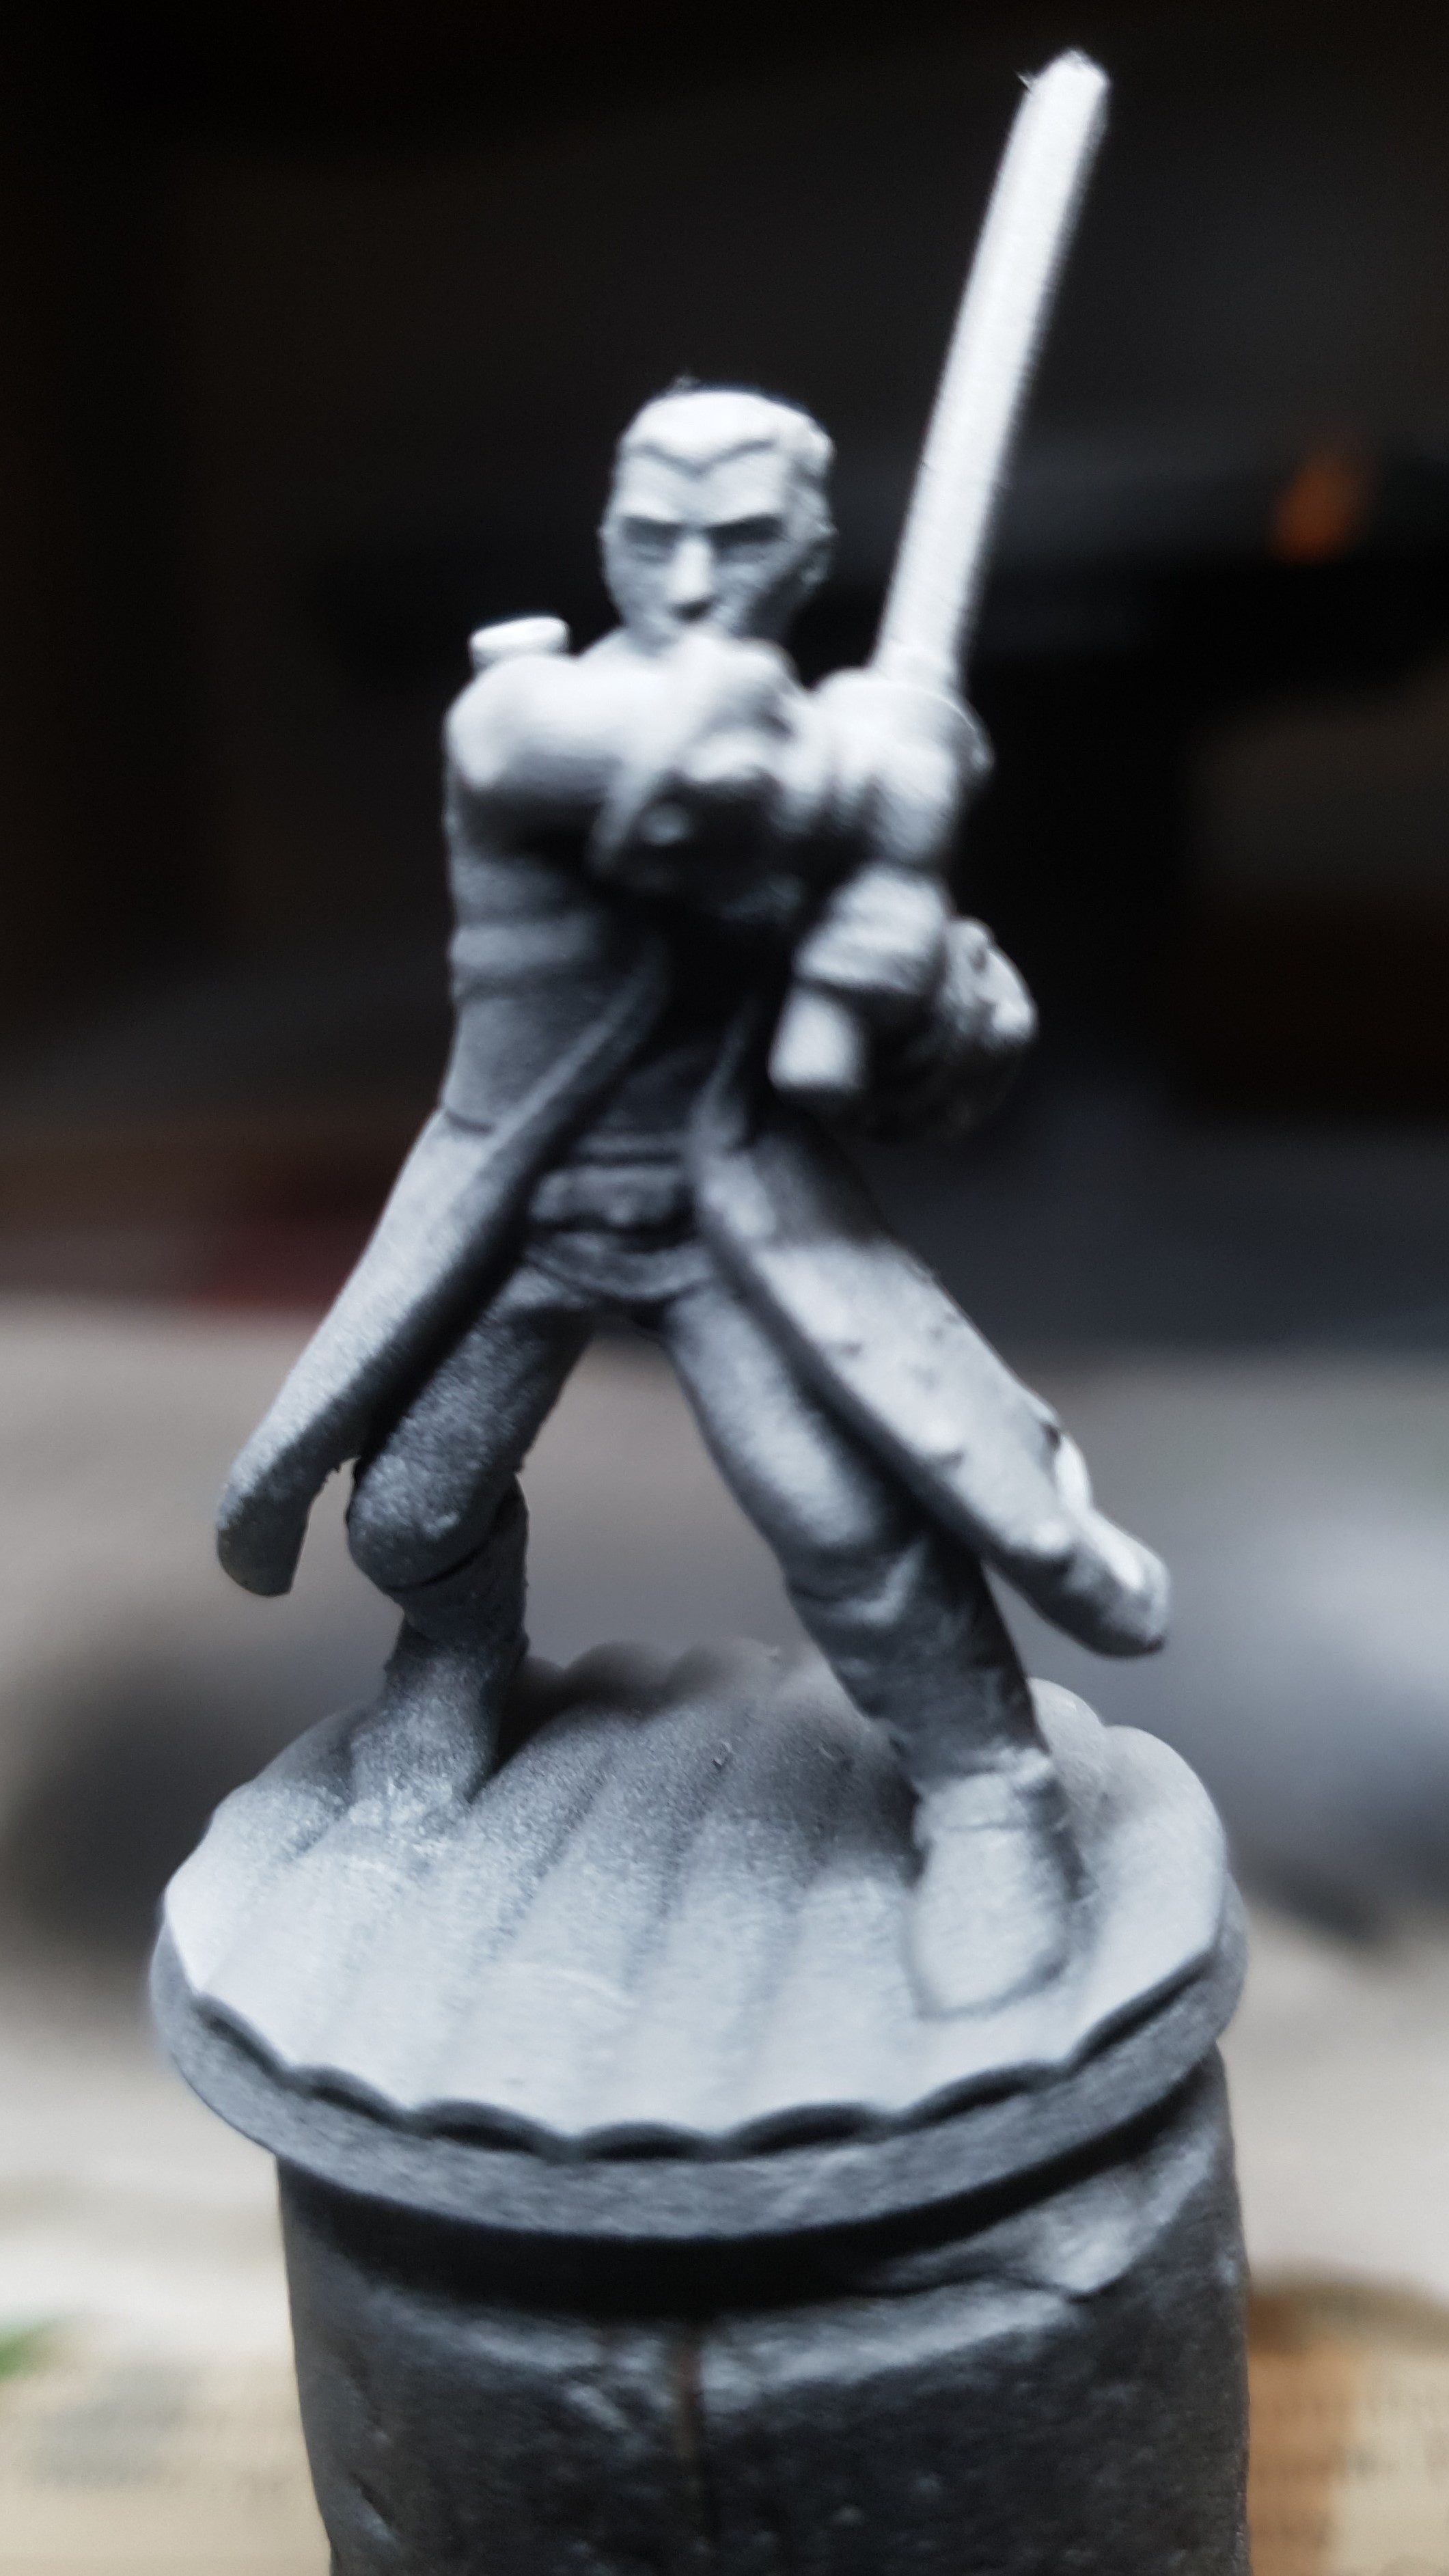 Part 5 : Priming the Miniatures, plus New Character Designs